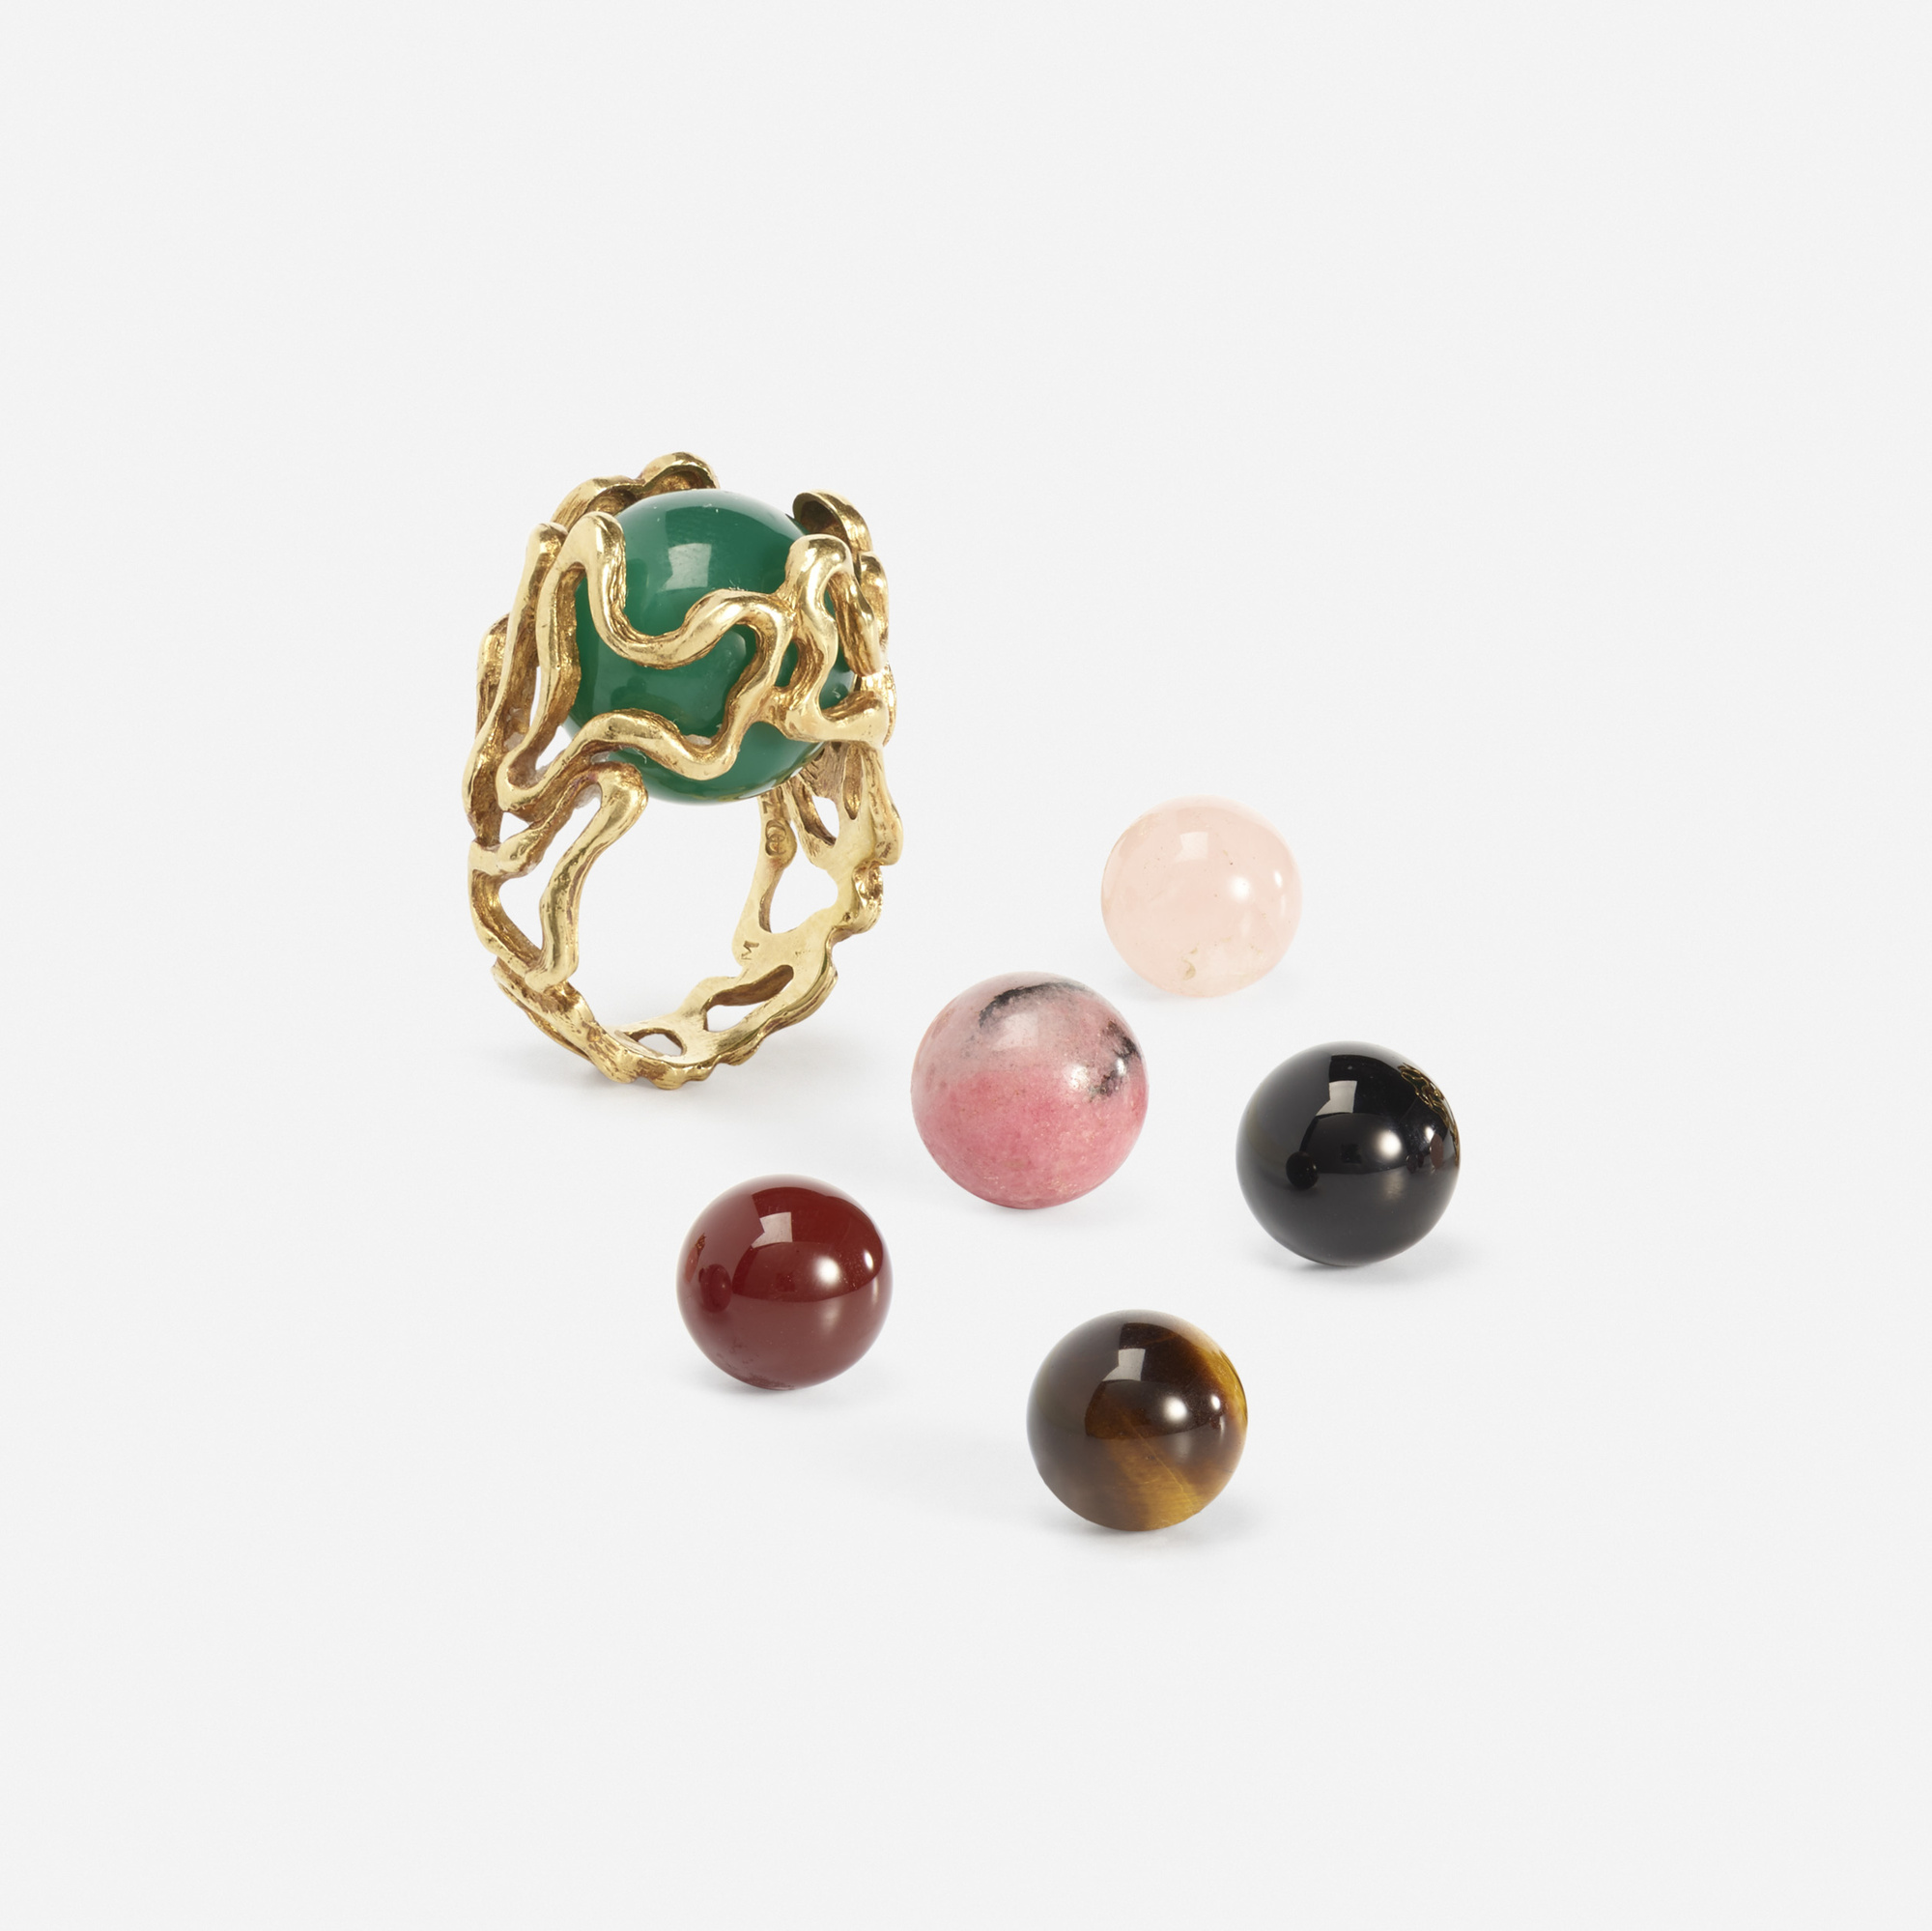 285: GILBERT ALBERT, A gold ring with interchangeable gemstones ...